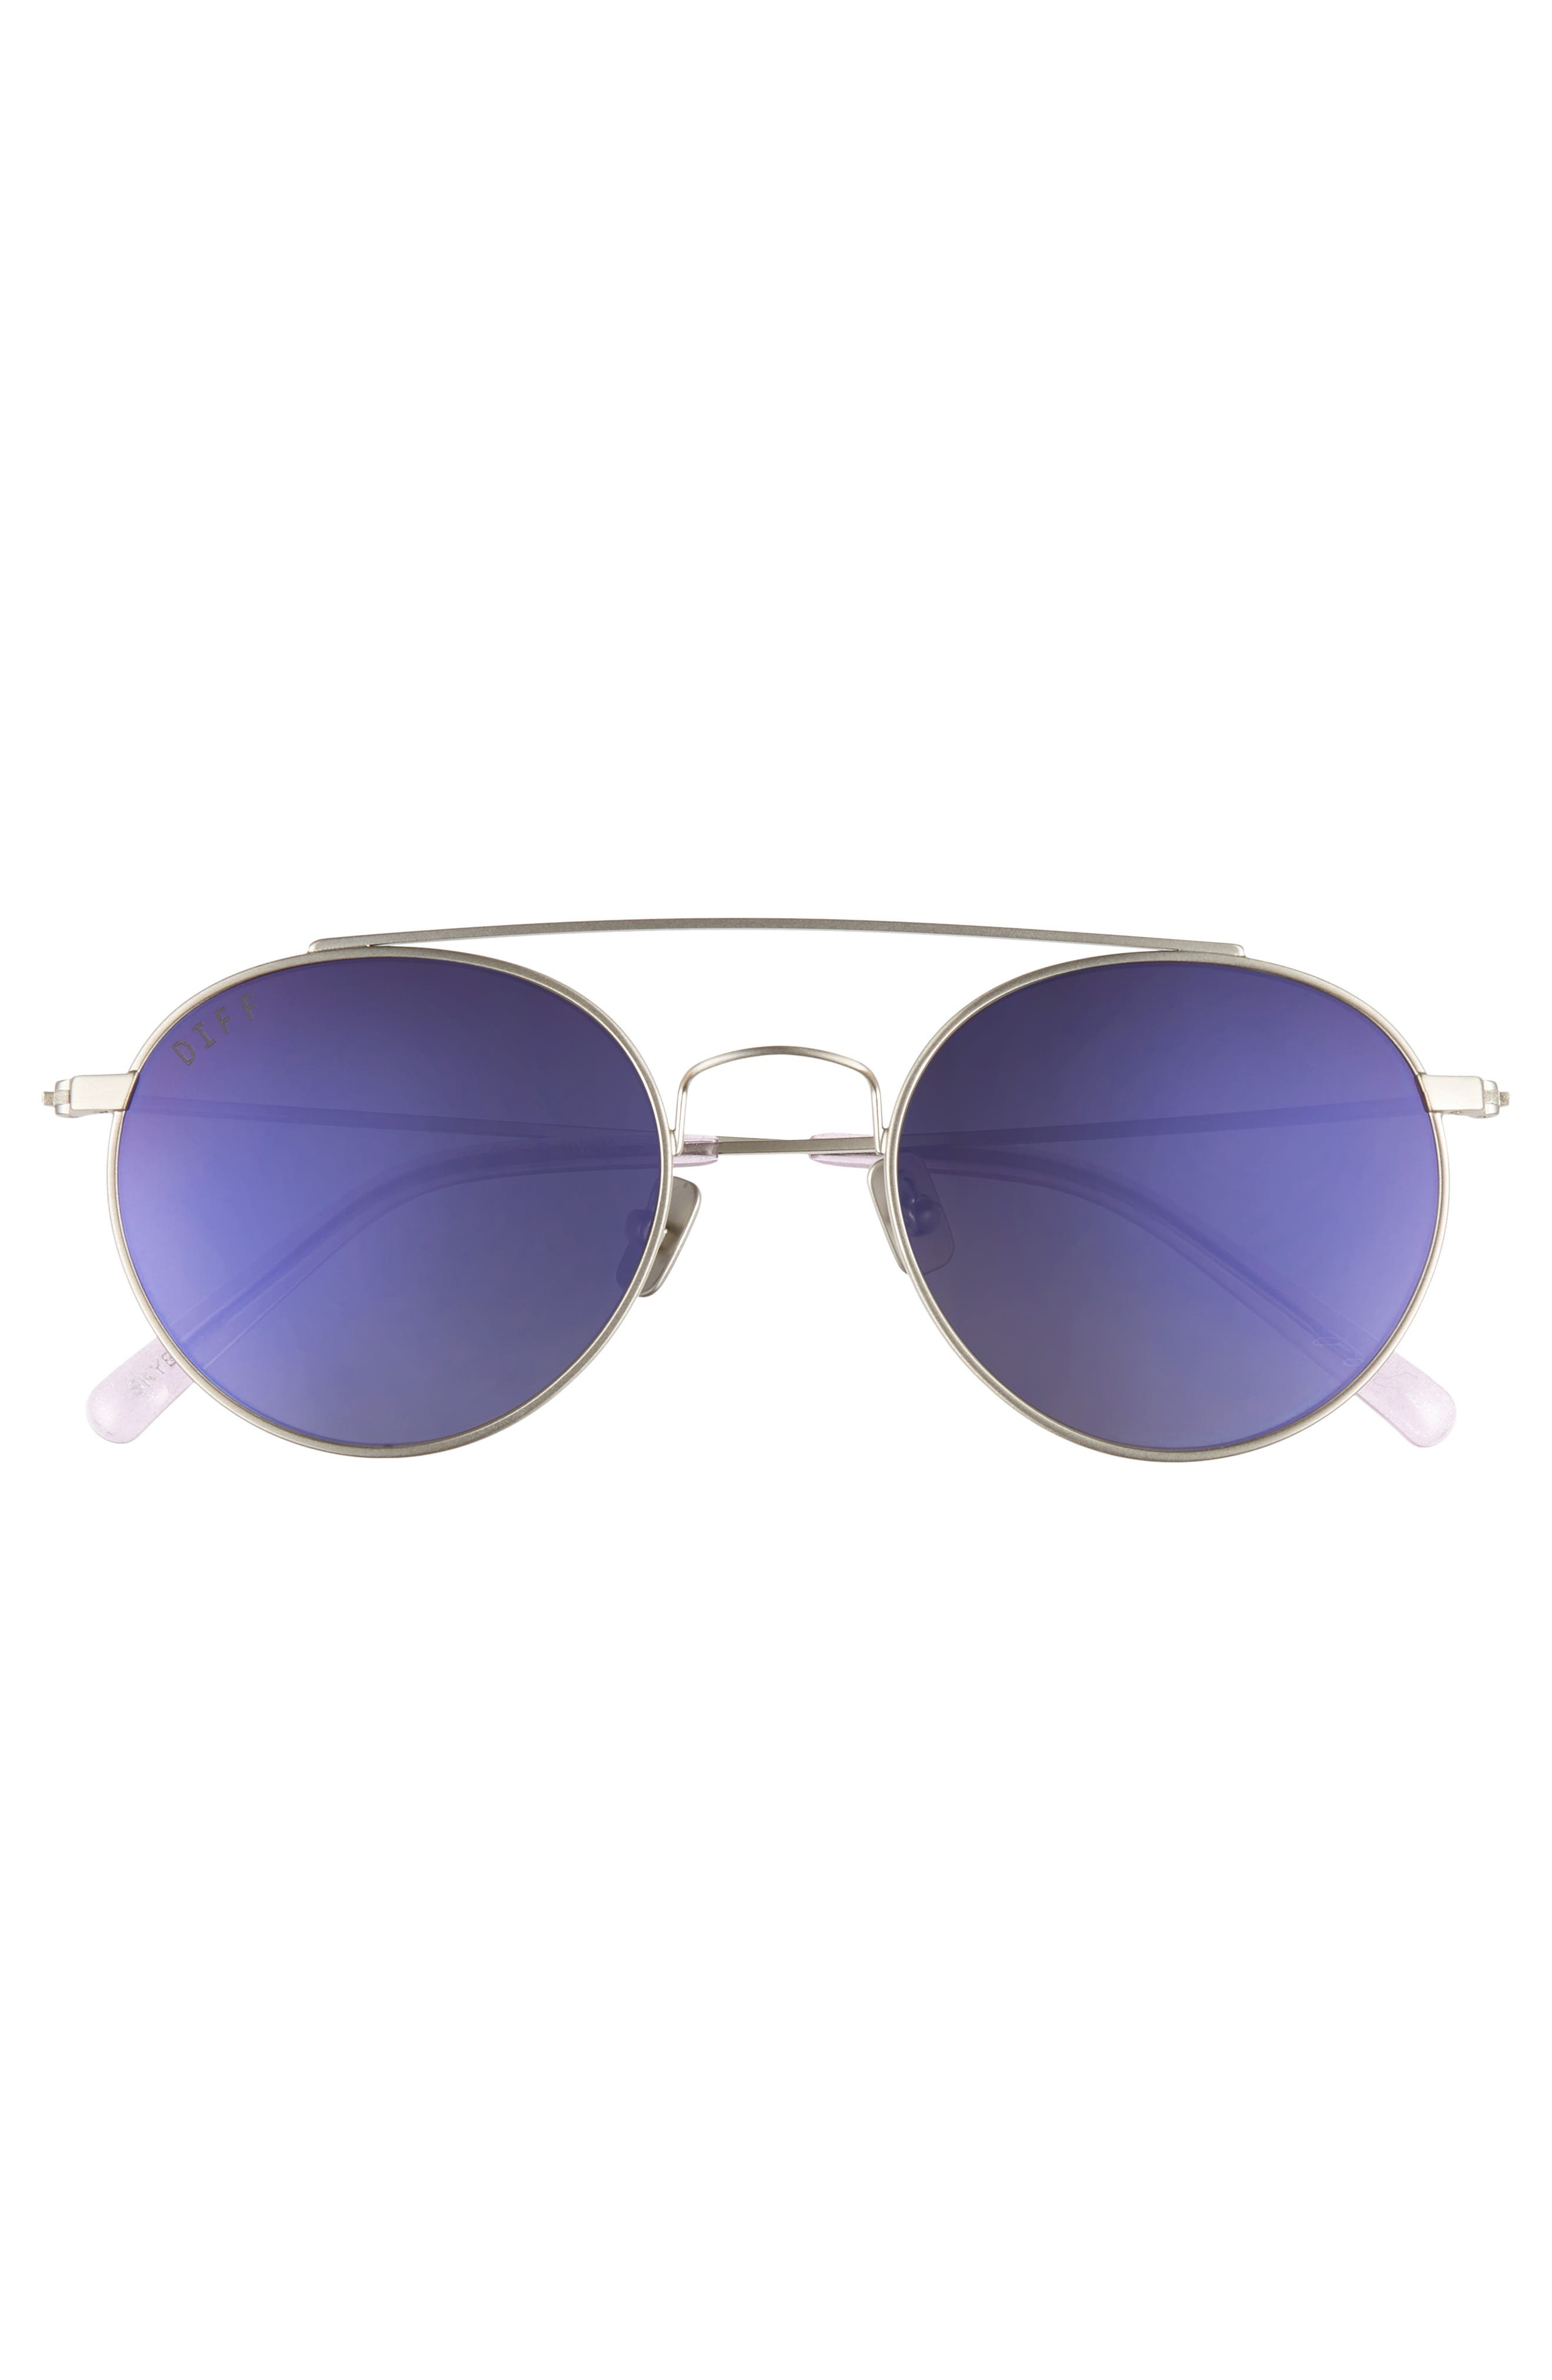 x Jessie James Decker Skye 52mm Polarized Round Sunglasses,                             Alternate thumbnail 3, color,                             BRUSHED SILVER/ PURPLE